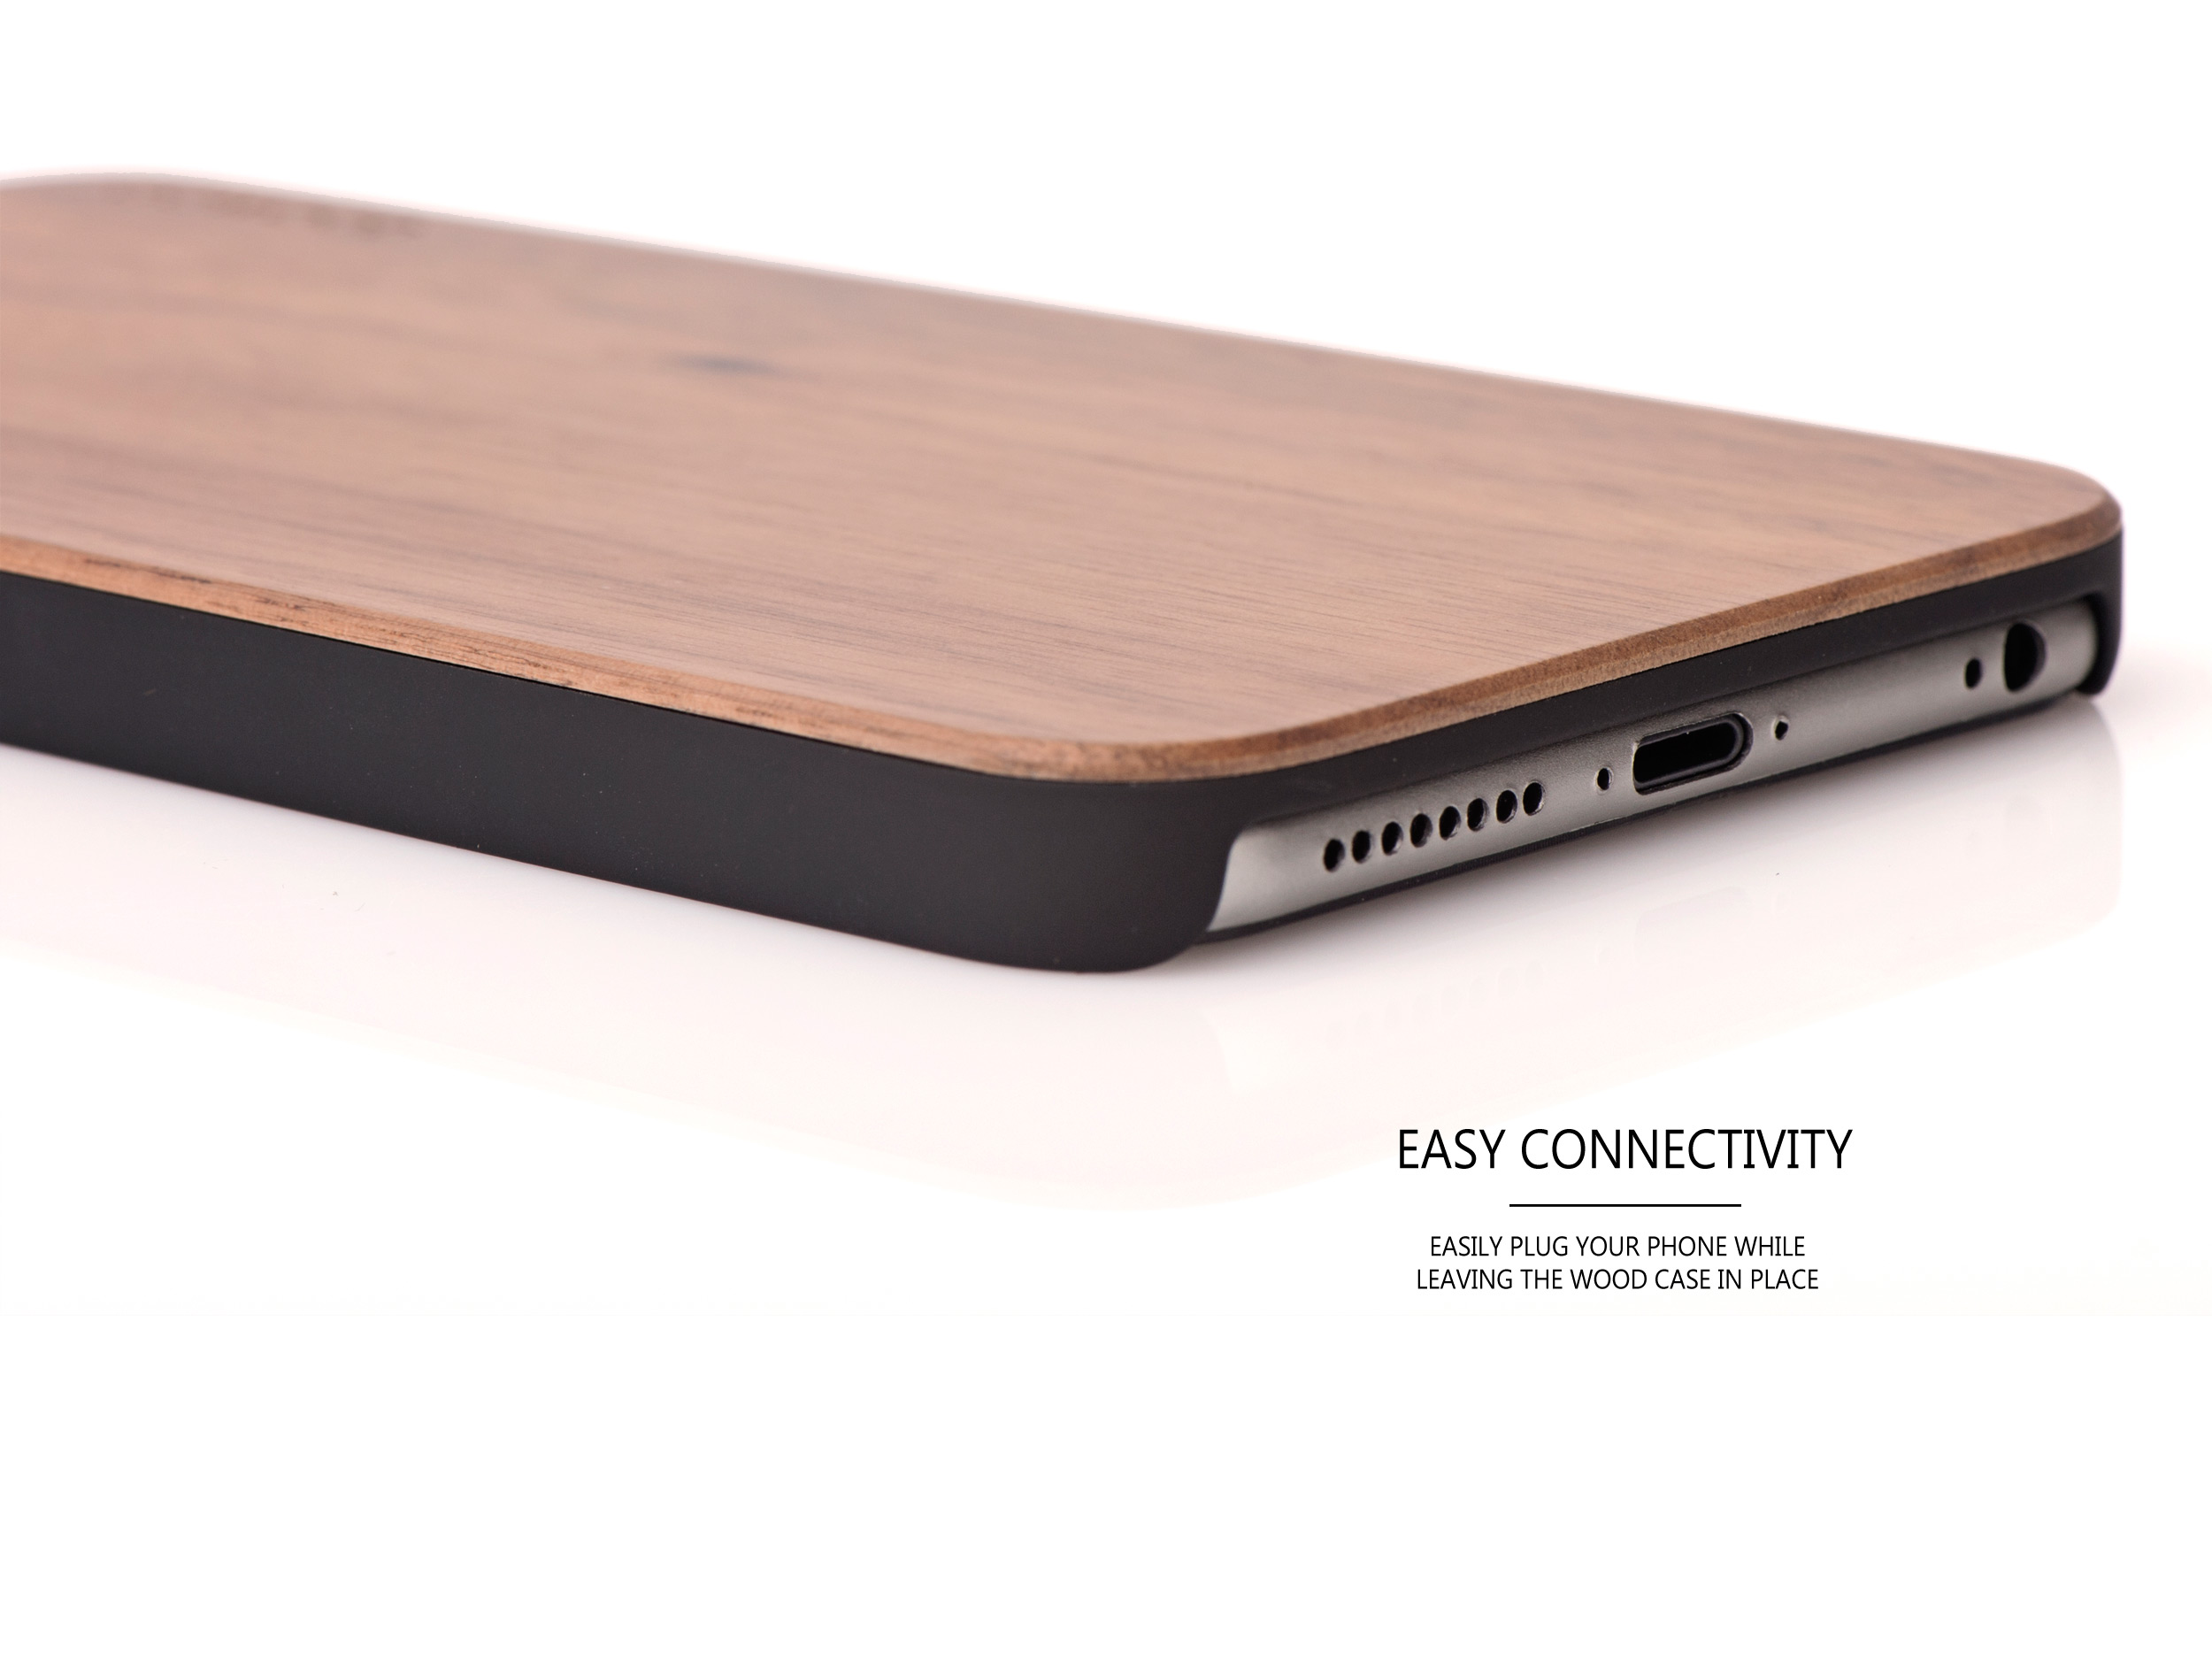 iPhone 6 Plus wood case walnut connectivity